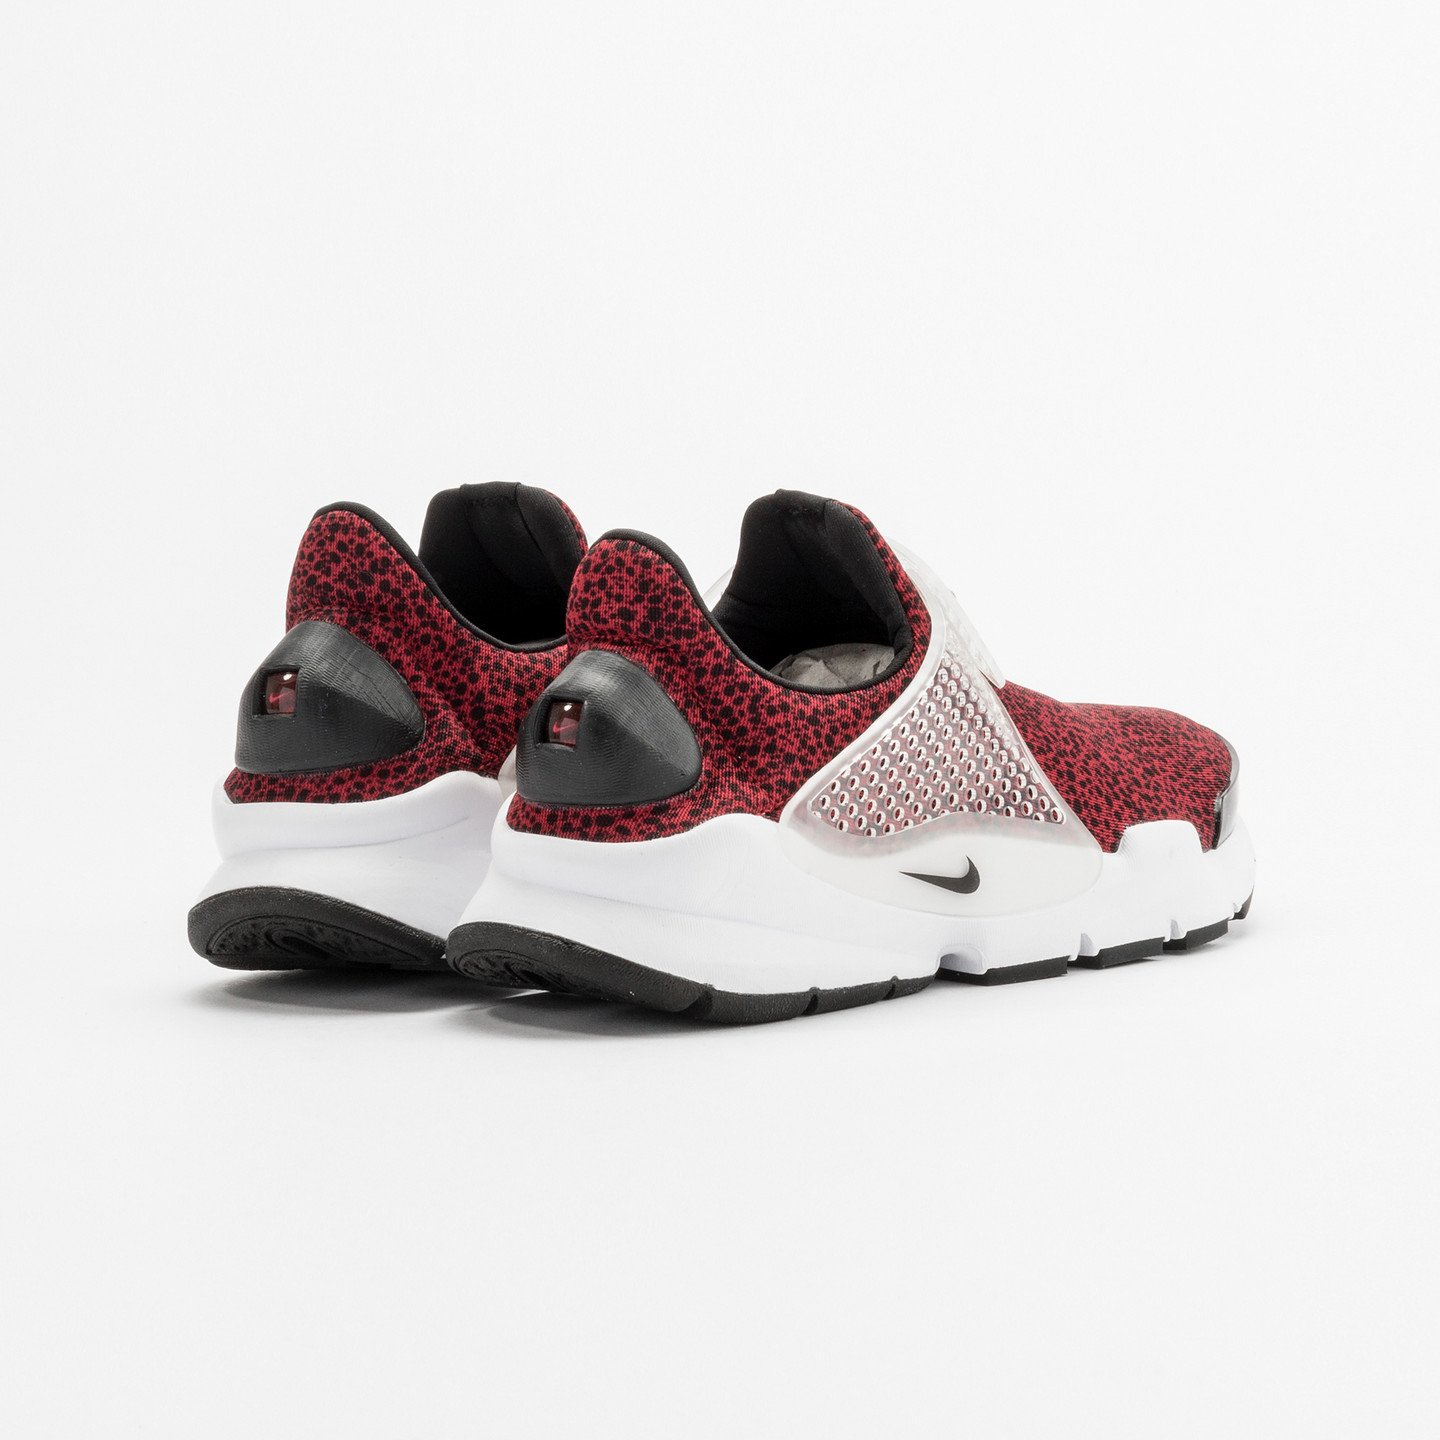 Nike Sock Dart QS  Safari Pack  Gym Red   Black   White 942198- 03f910cdb